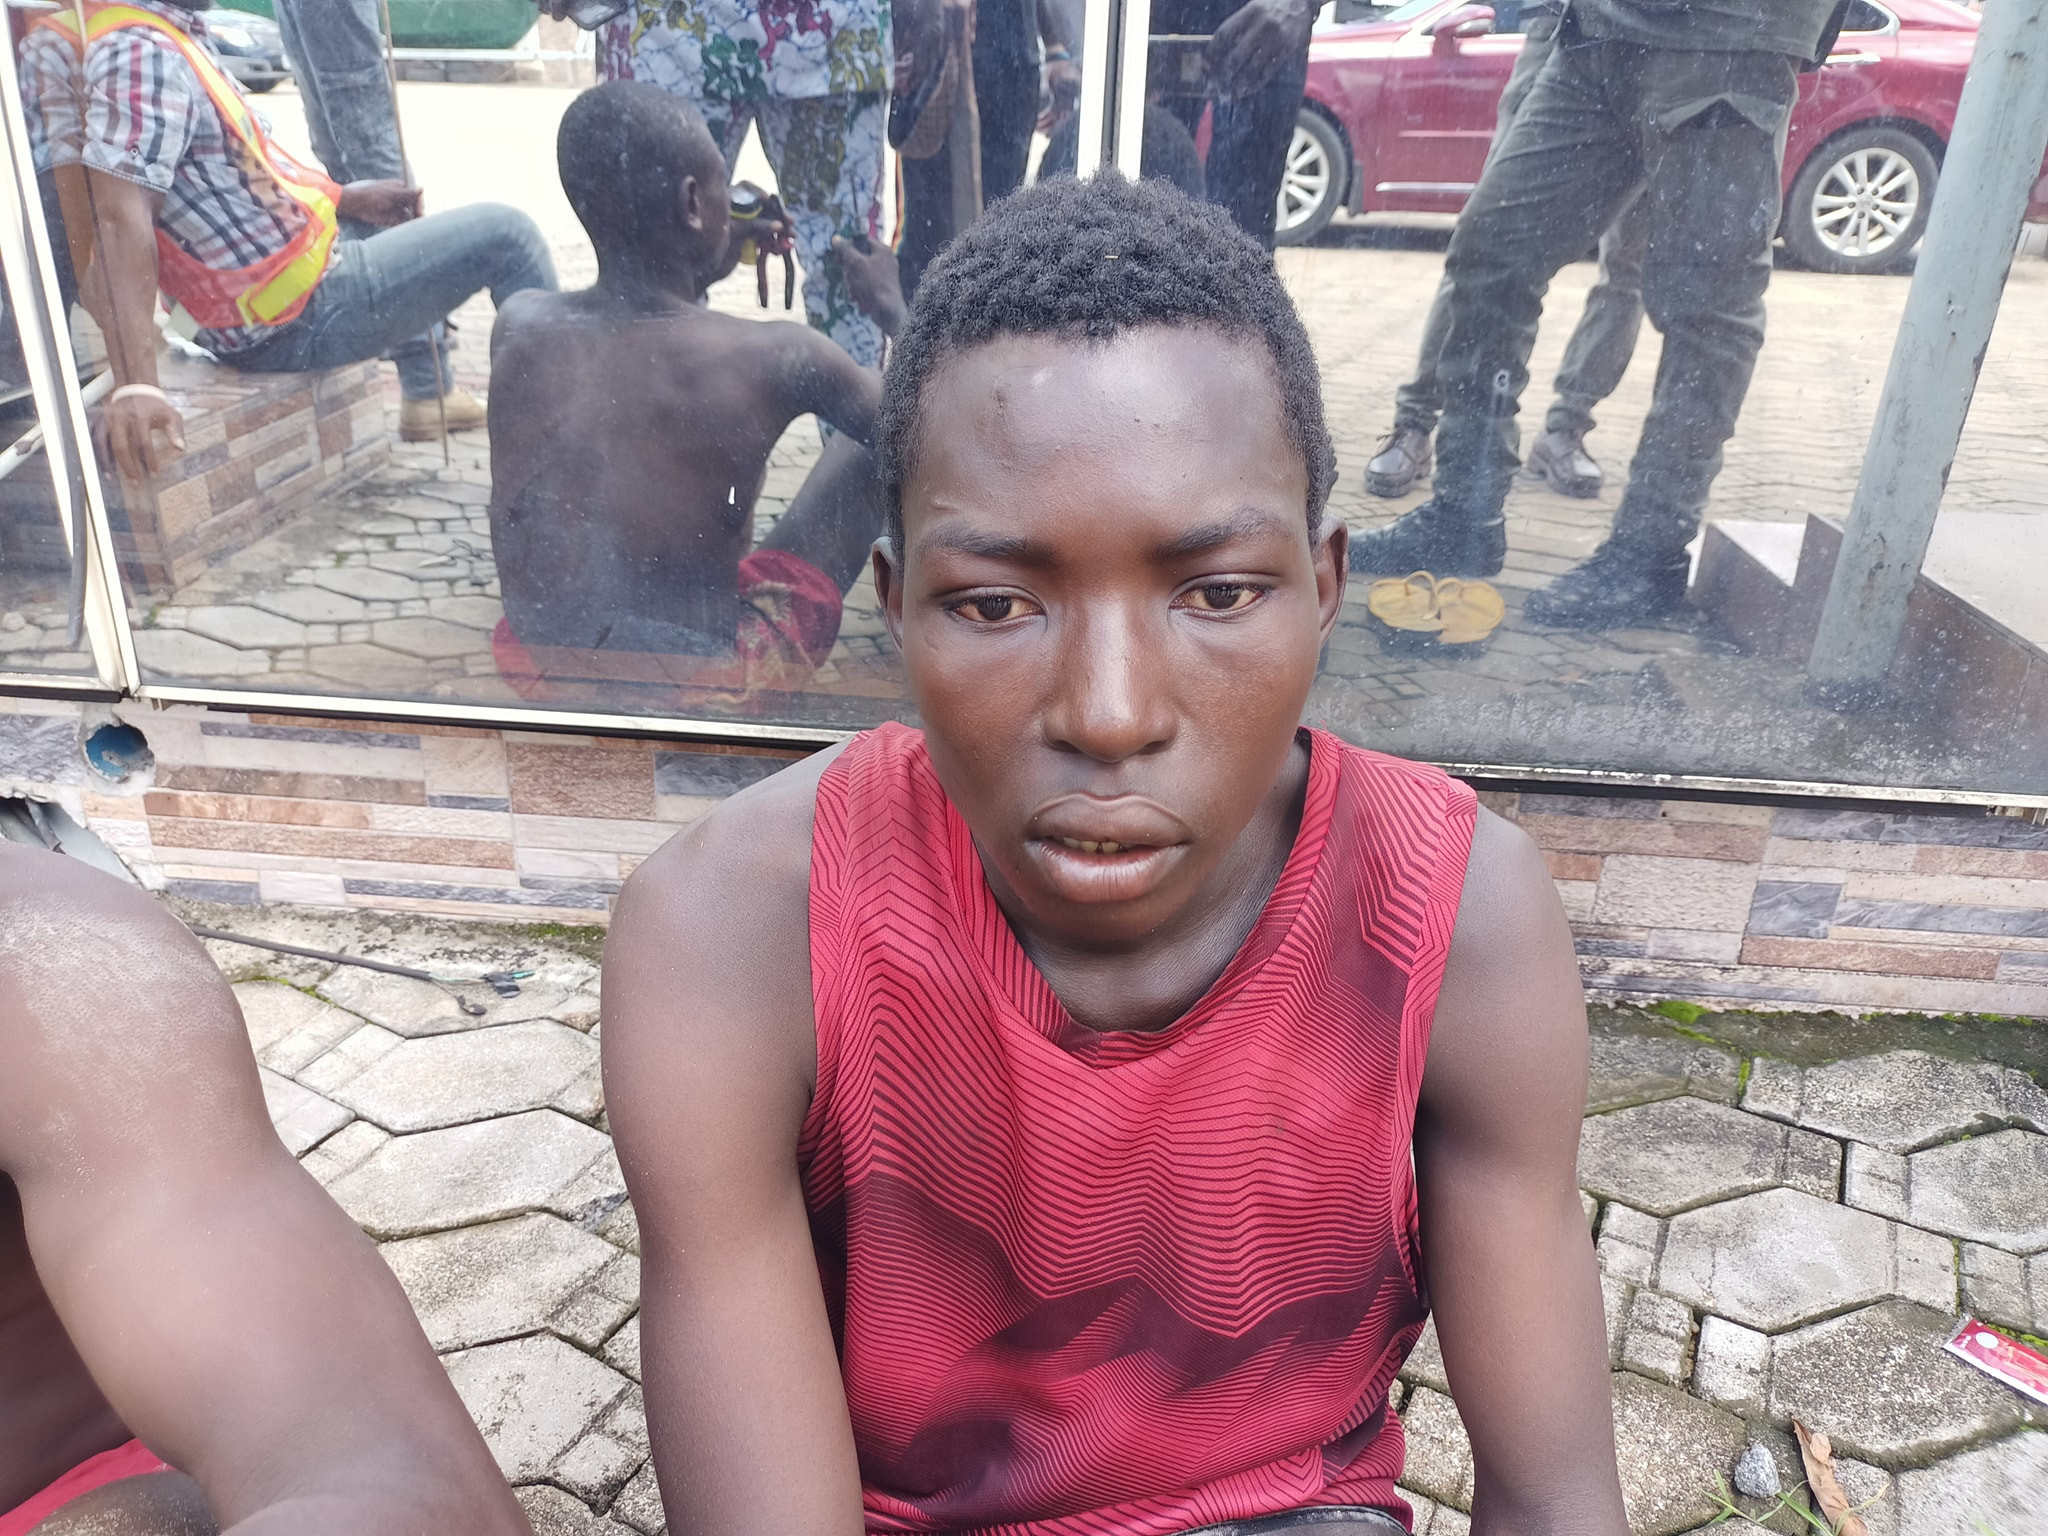 17-year-old suspected cultist arrested for burglary, theft in Bayelsa